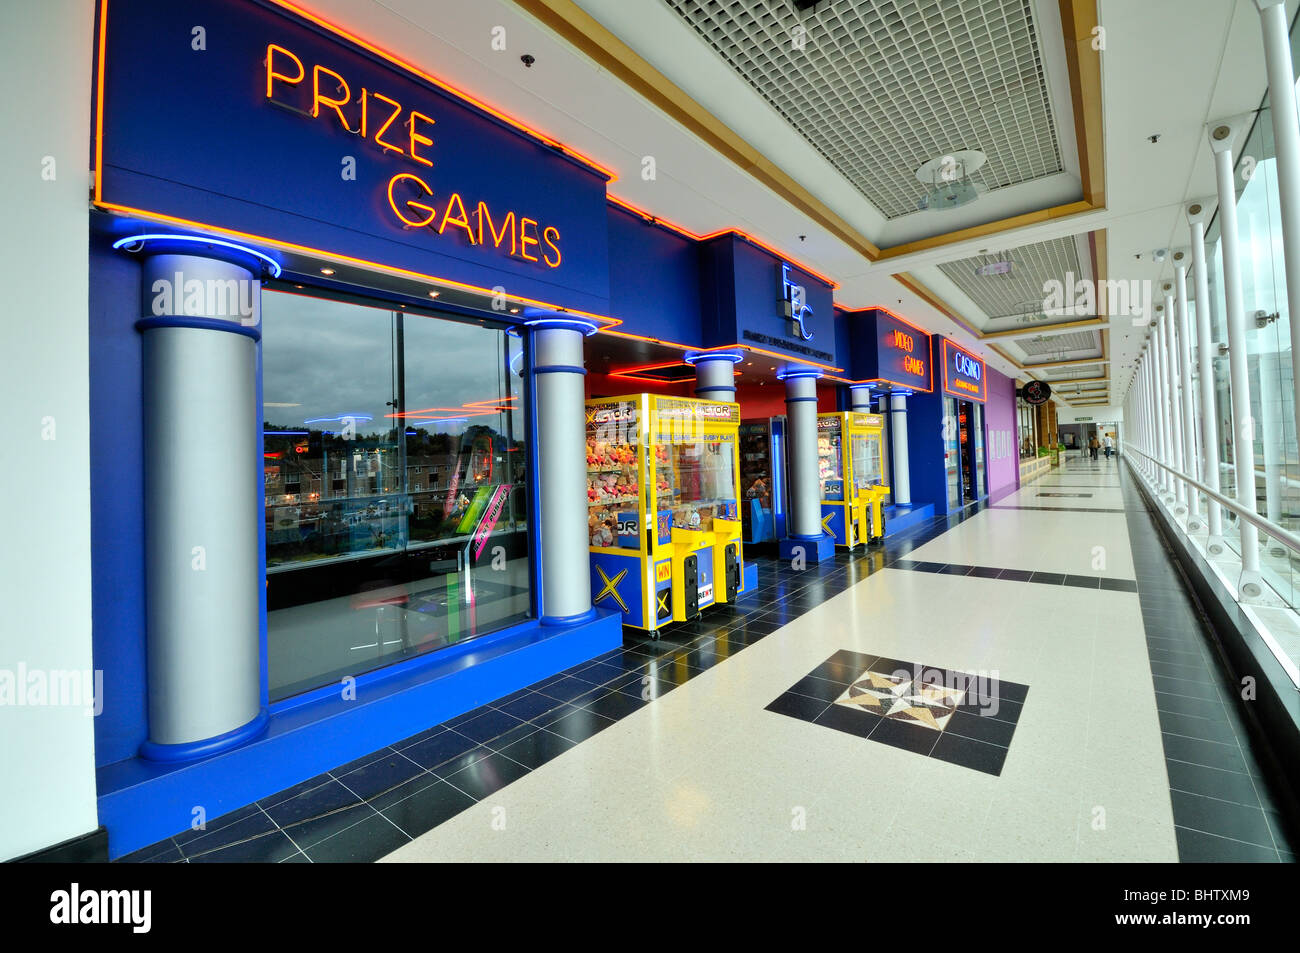 Gambling and Game Arcade inside a shopping Centre. - Stock Image